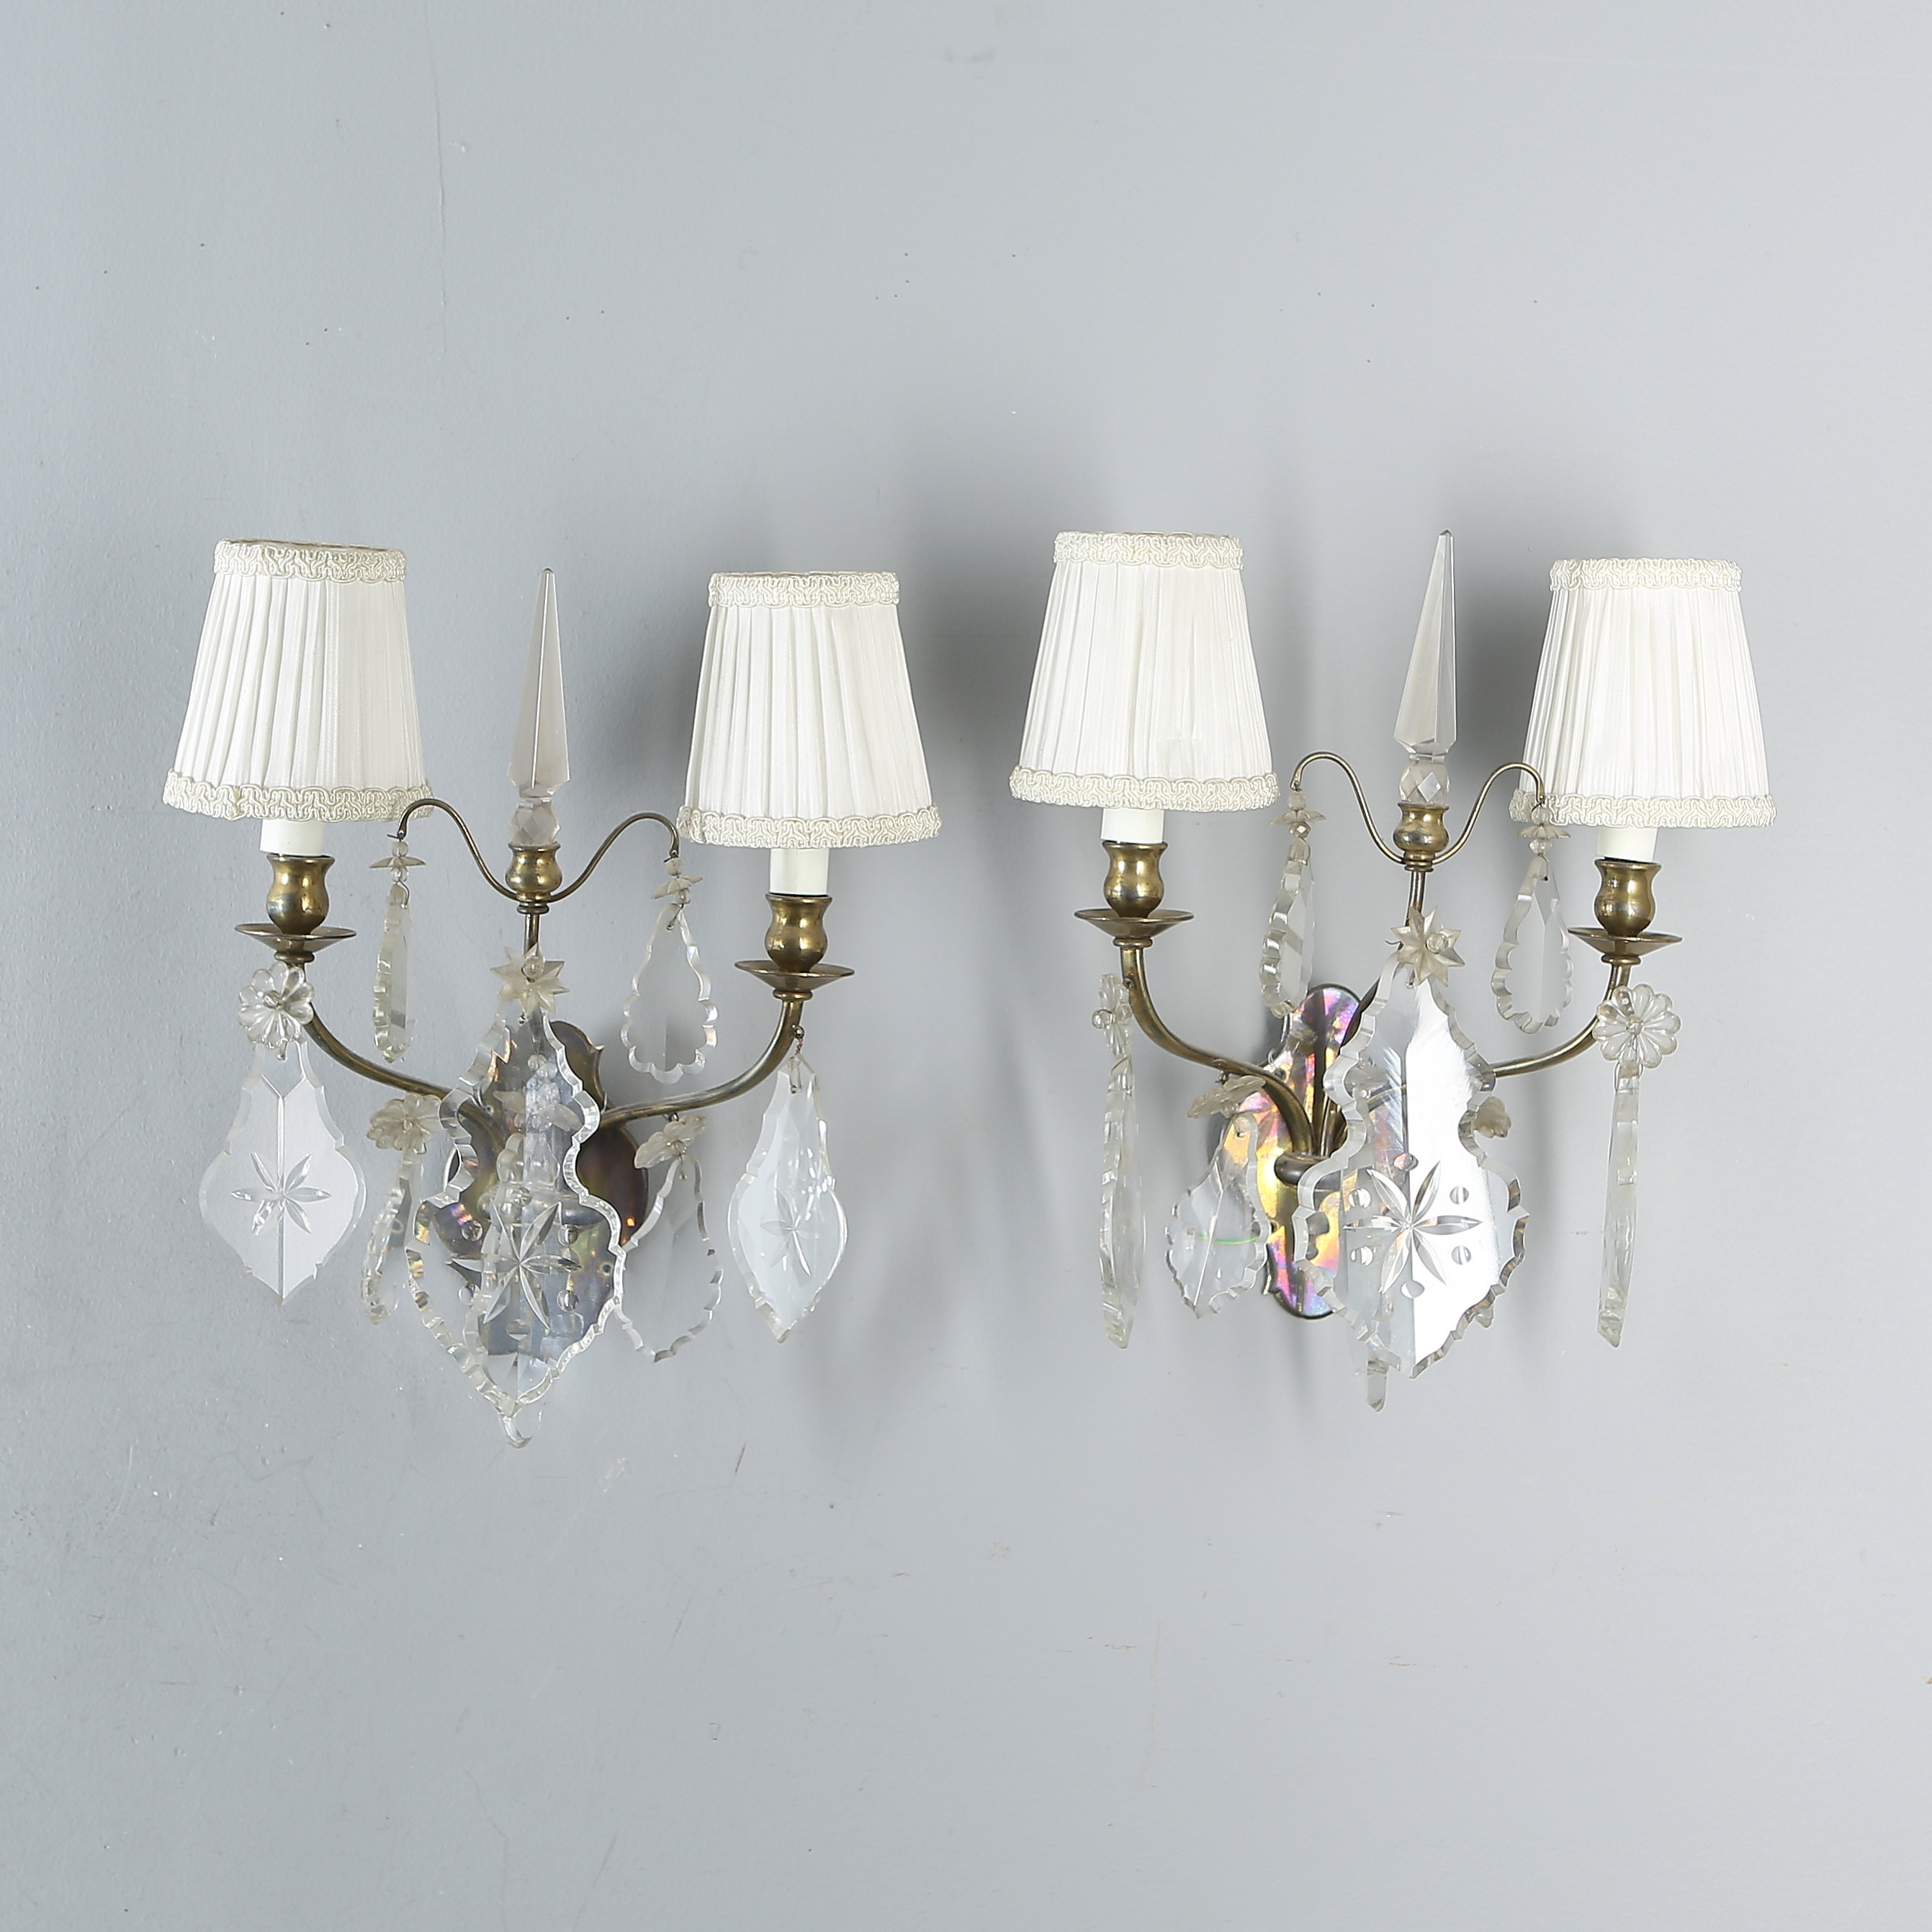 WALL LAMPS, a pair, brass, hung with prisms, first half of